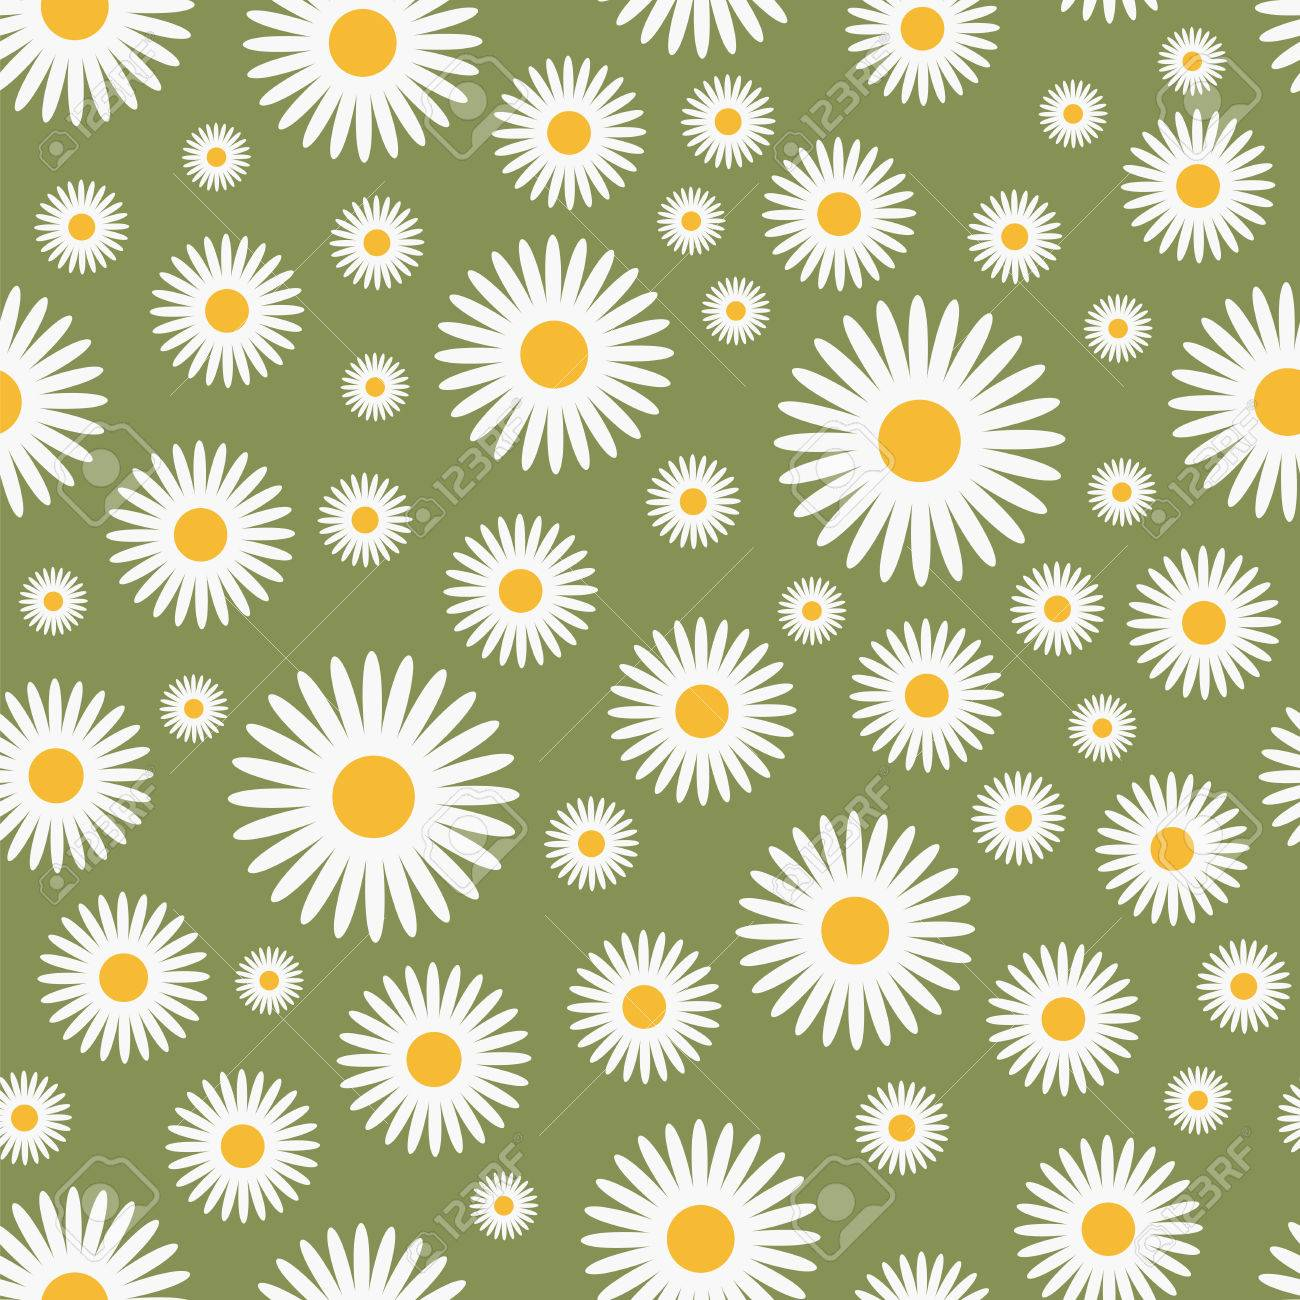 floral green pattern - seamless,   illustration Stock Vector - 7822339